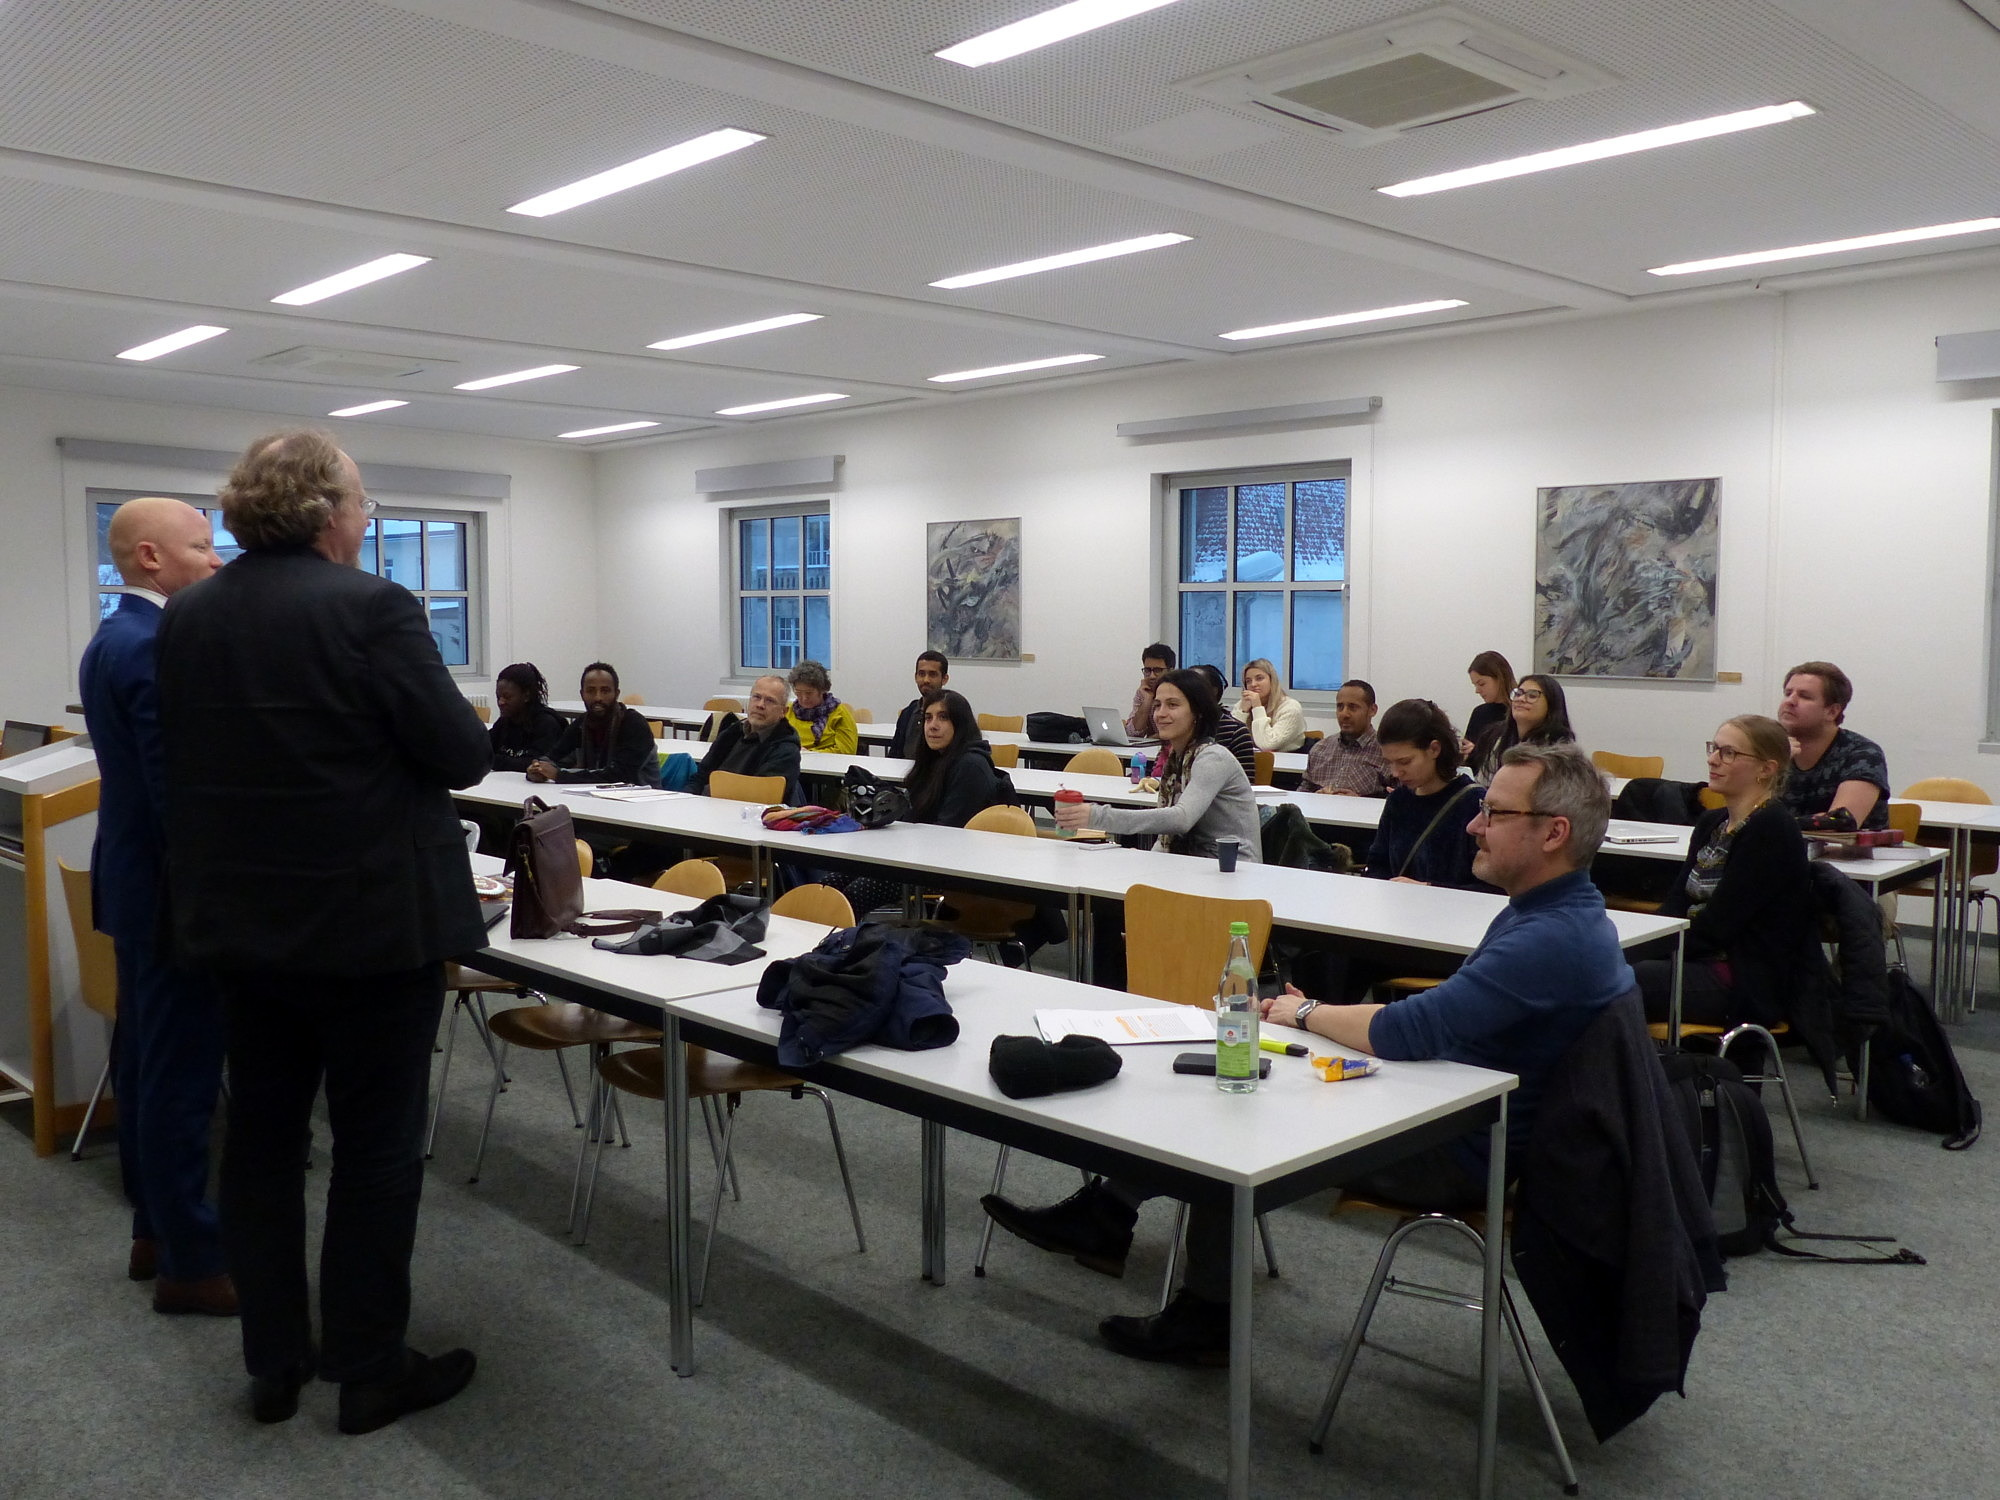 Prof. Bielefeldt introduces Ambassador Possi to a group of M.A. Human Rights Students